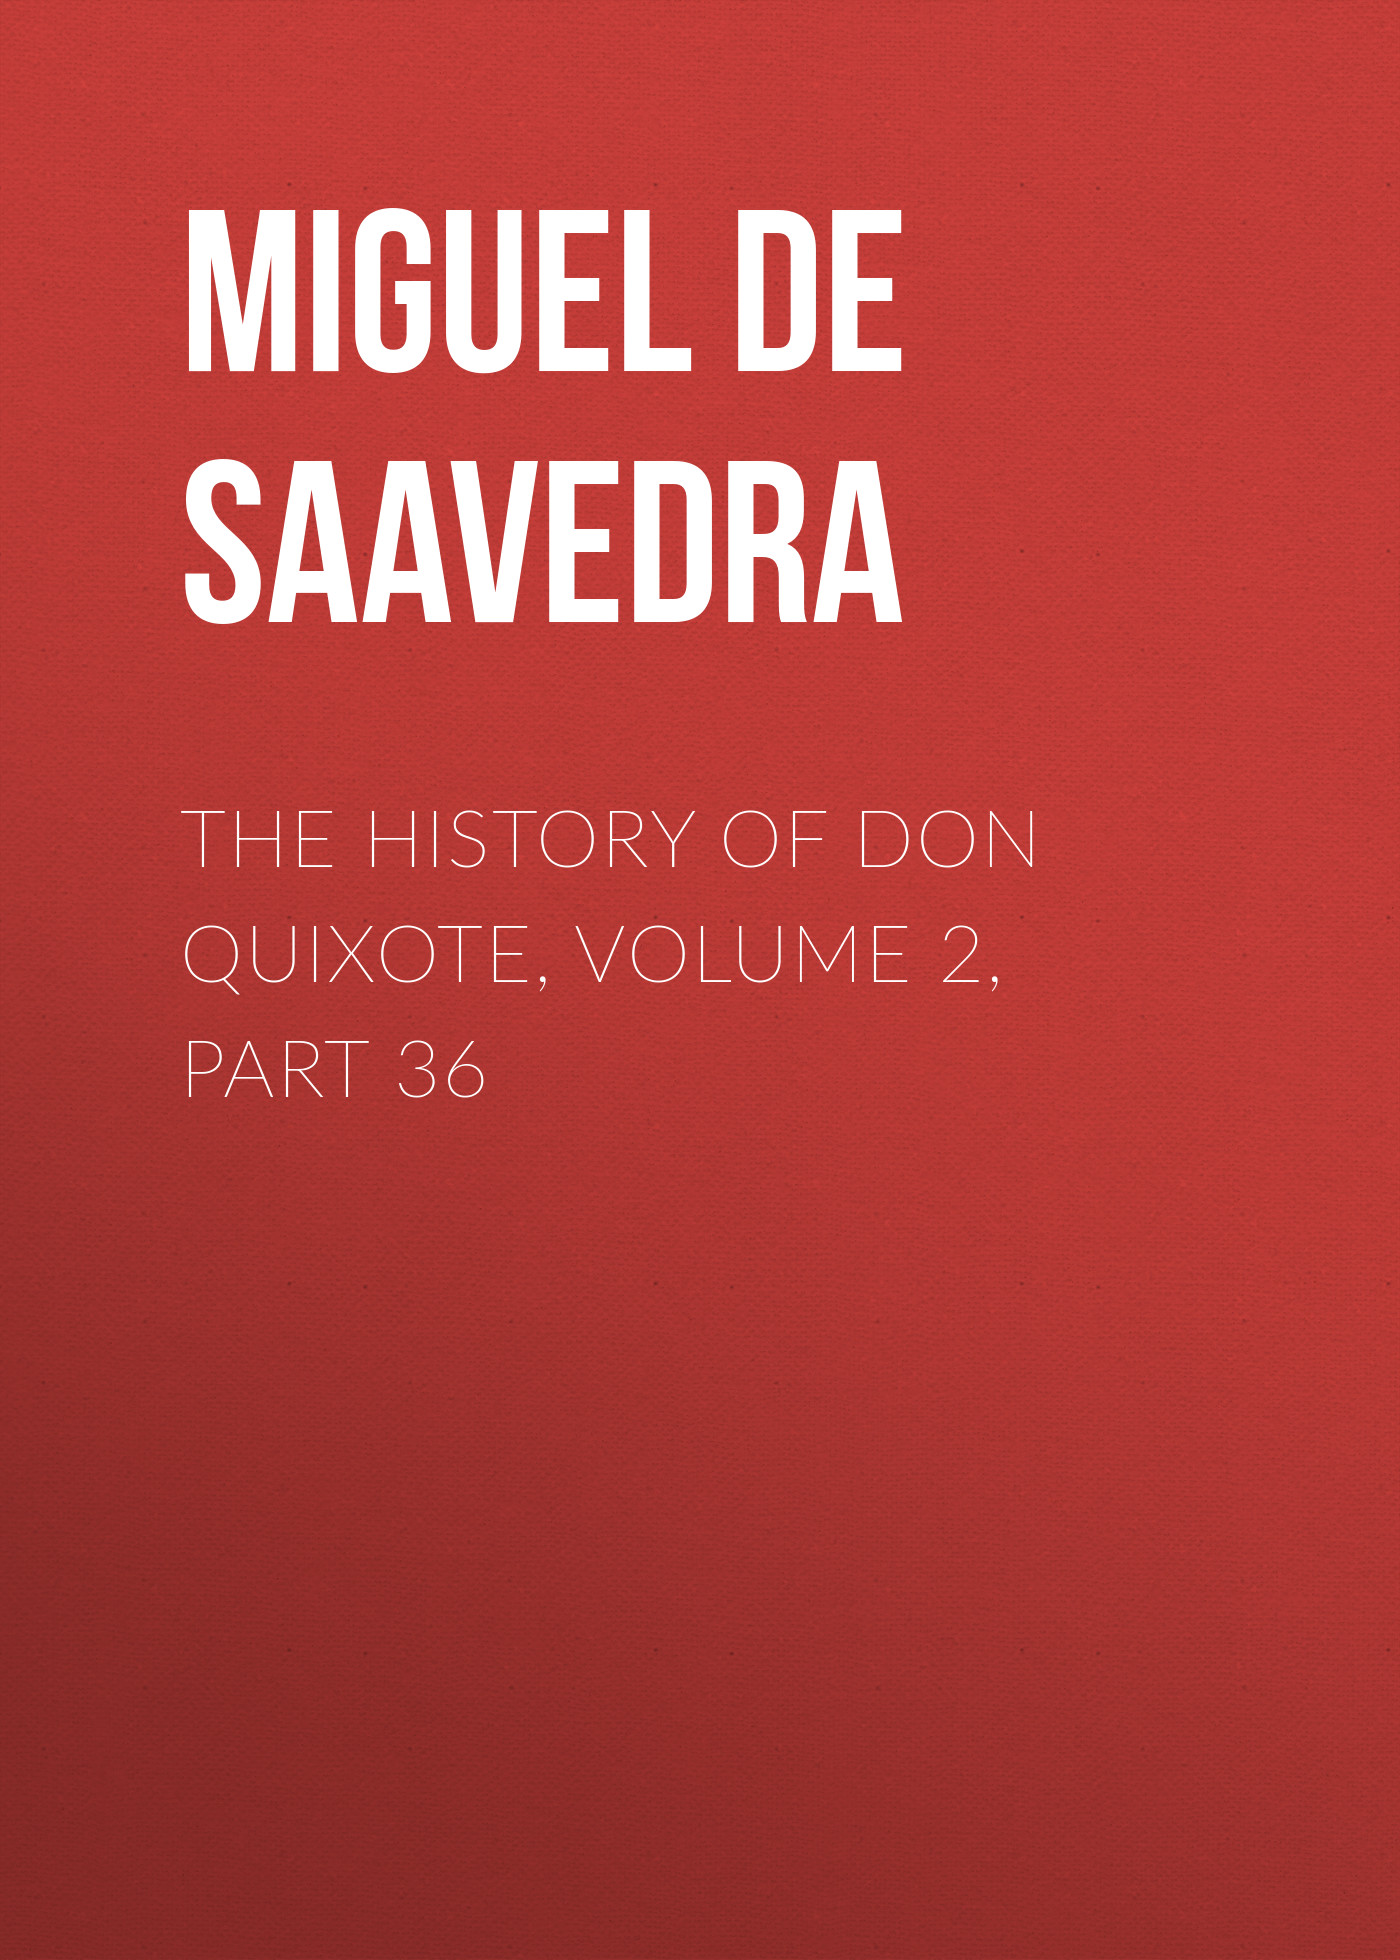 Мигель де Сервантес Сааведра The History of Don Quixote, Volume 2, Part 36 rasmus björn anderson the heimskringla a history of the norse kings volume 5 part 2